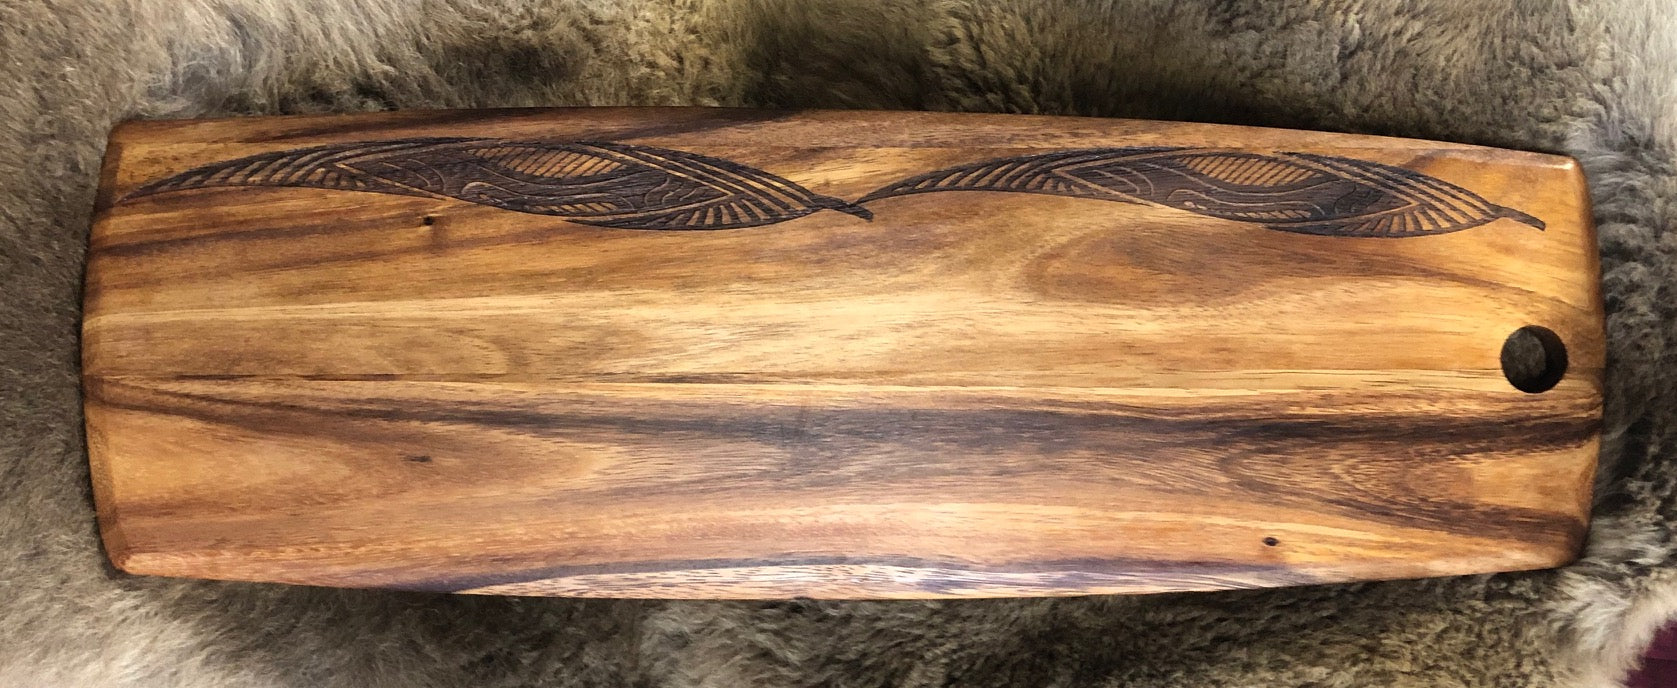 ACACIA WOOD PLATTER LARGE- GUM LEAVES JOURNEYS SHEILD DESIGN